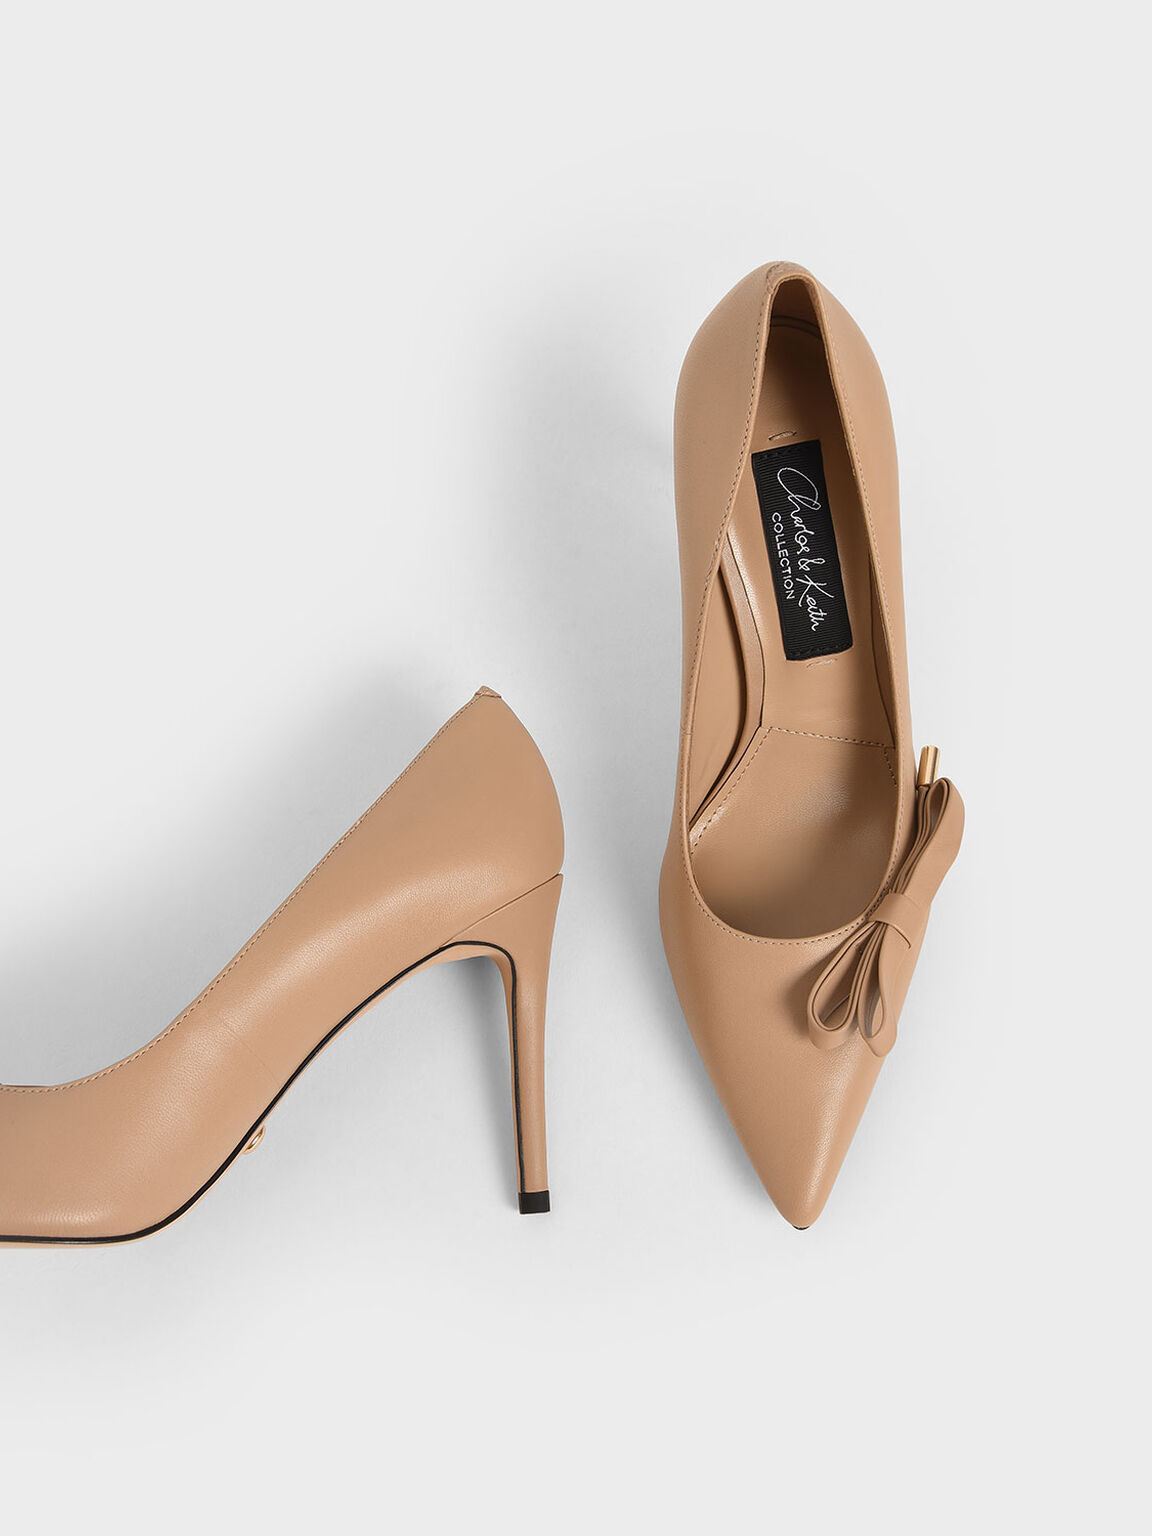 Leather Bow Stiletto Pumps, Nude, hi-res